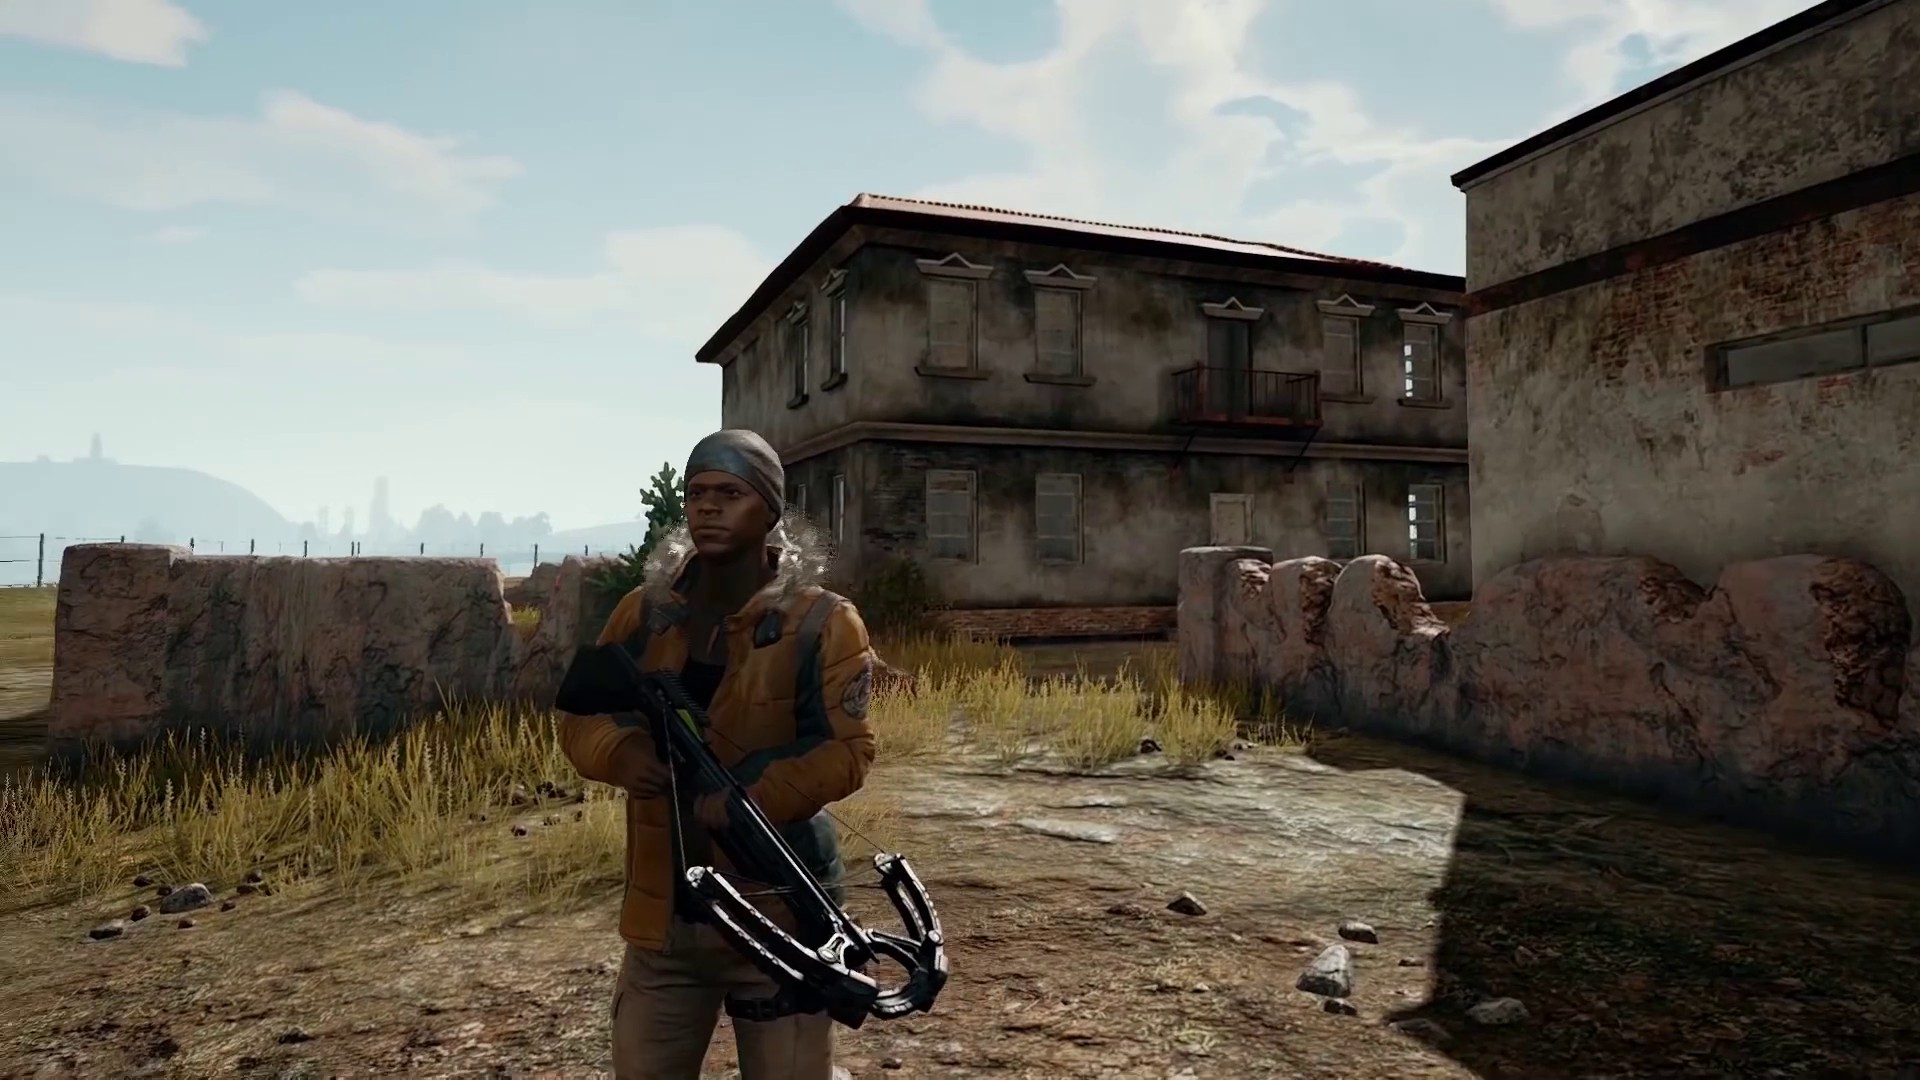 Pubg Wallpaper 1080p: PLAYERUNKNOWN'S BATTLEGROUNDS Wallpapers, Pictures, Images